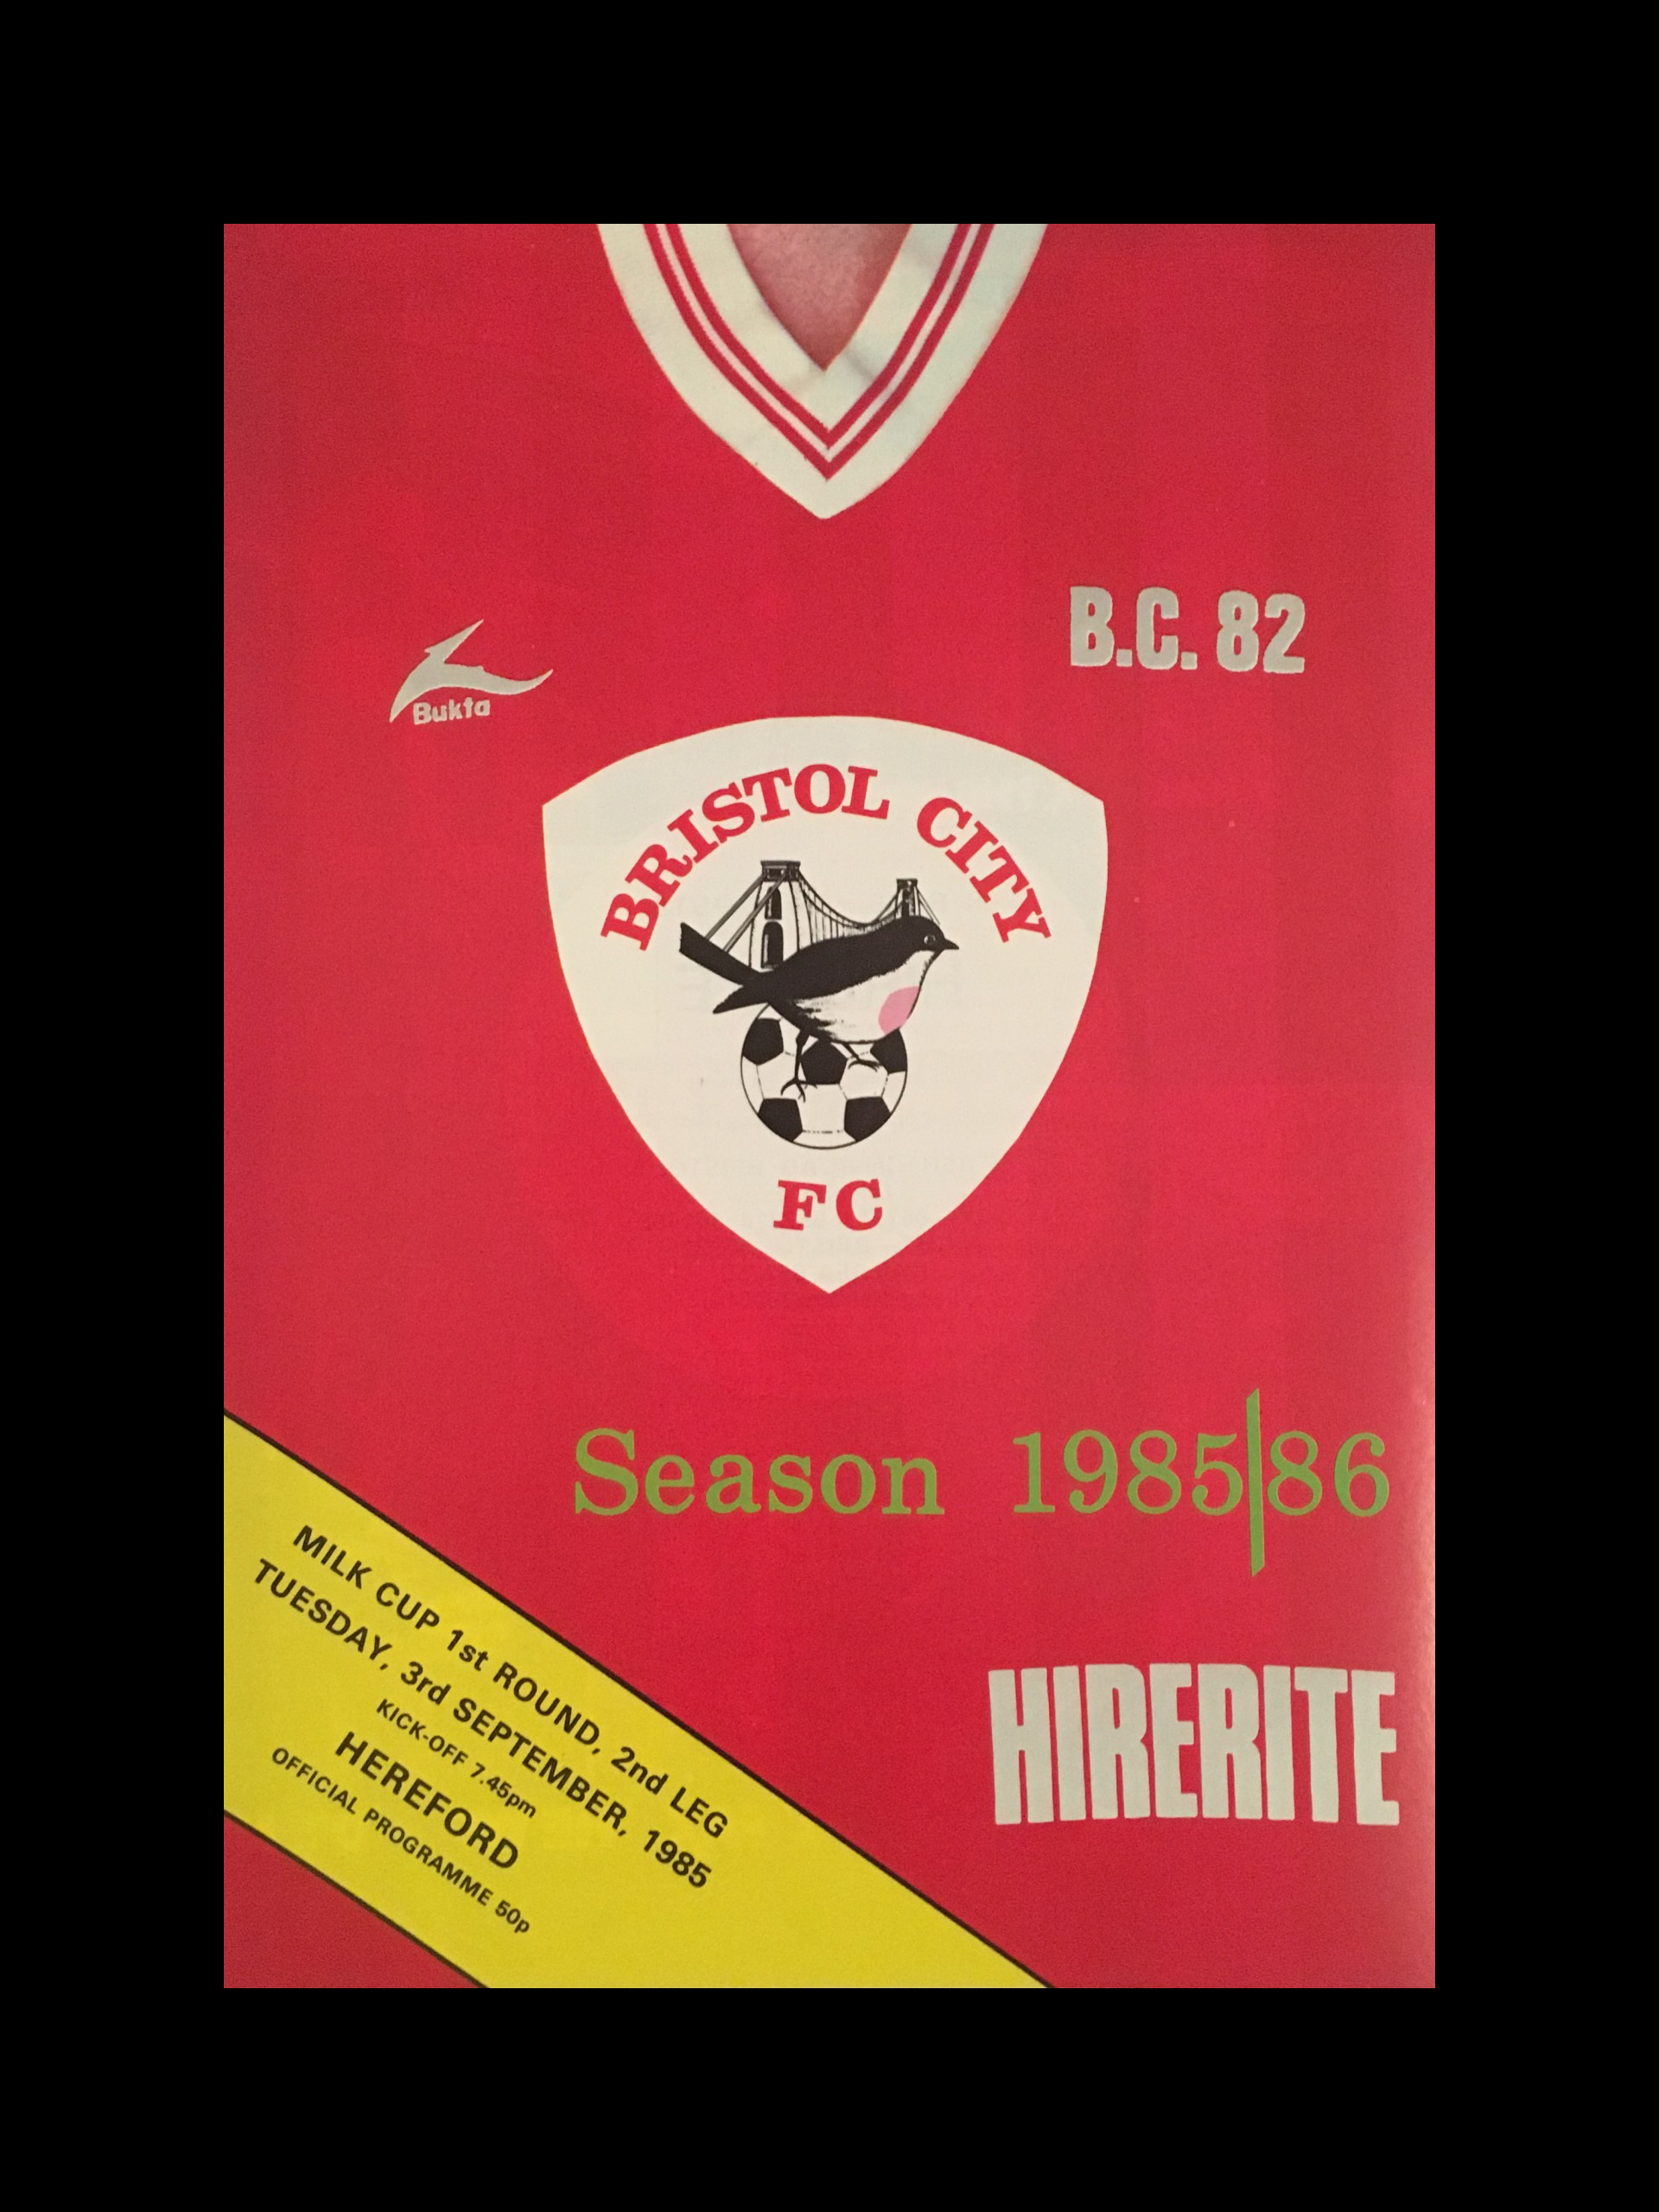 Bristol City v Hereford 03-09-85 Programme